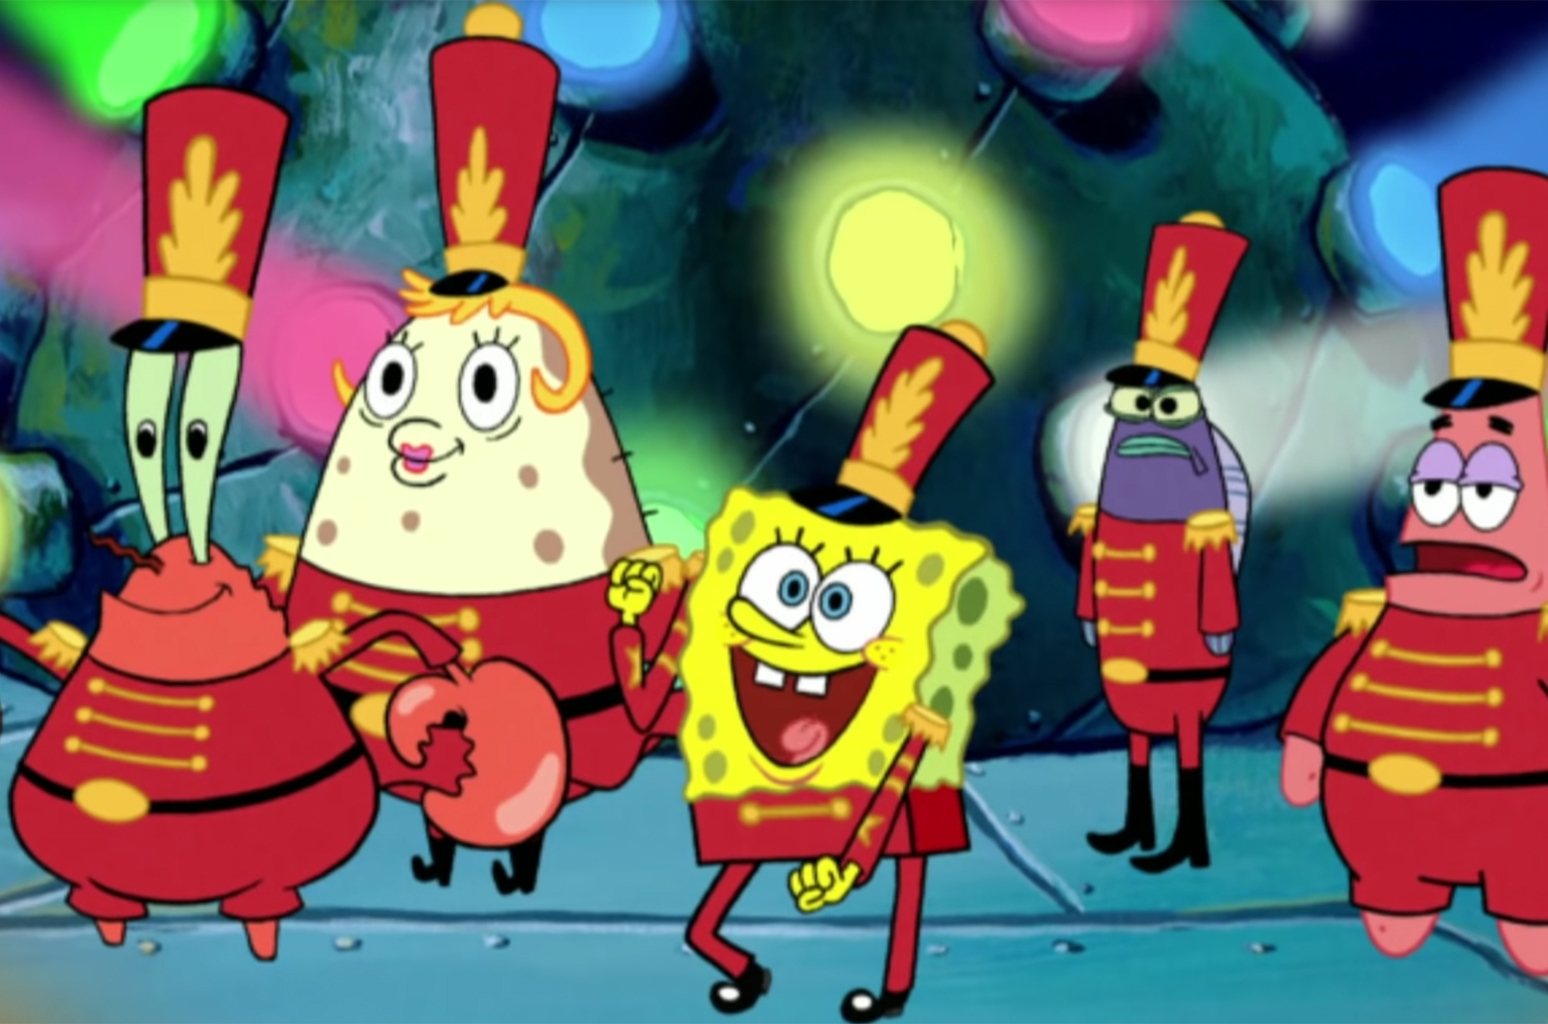 Spongebob Squarepants' 'sweet Victory' Jumps 566% In Streams intended for Super Bowl 2019 Sweet Victory